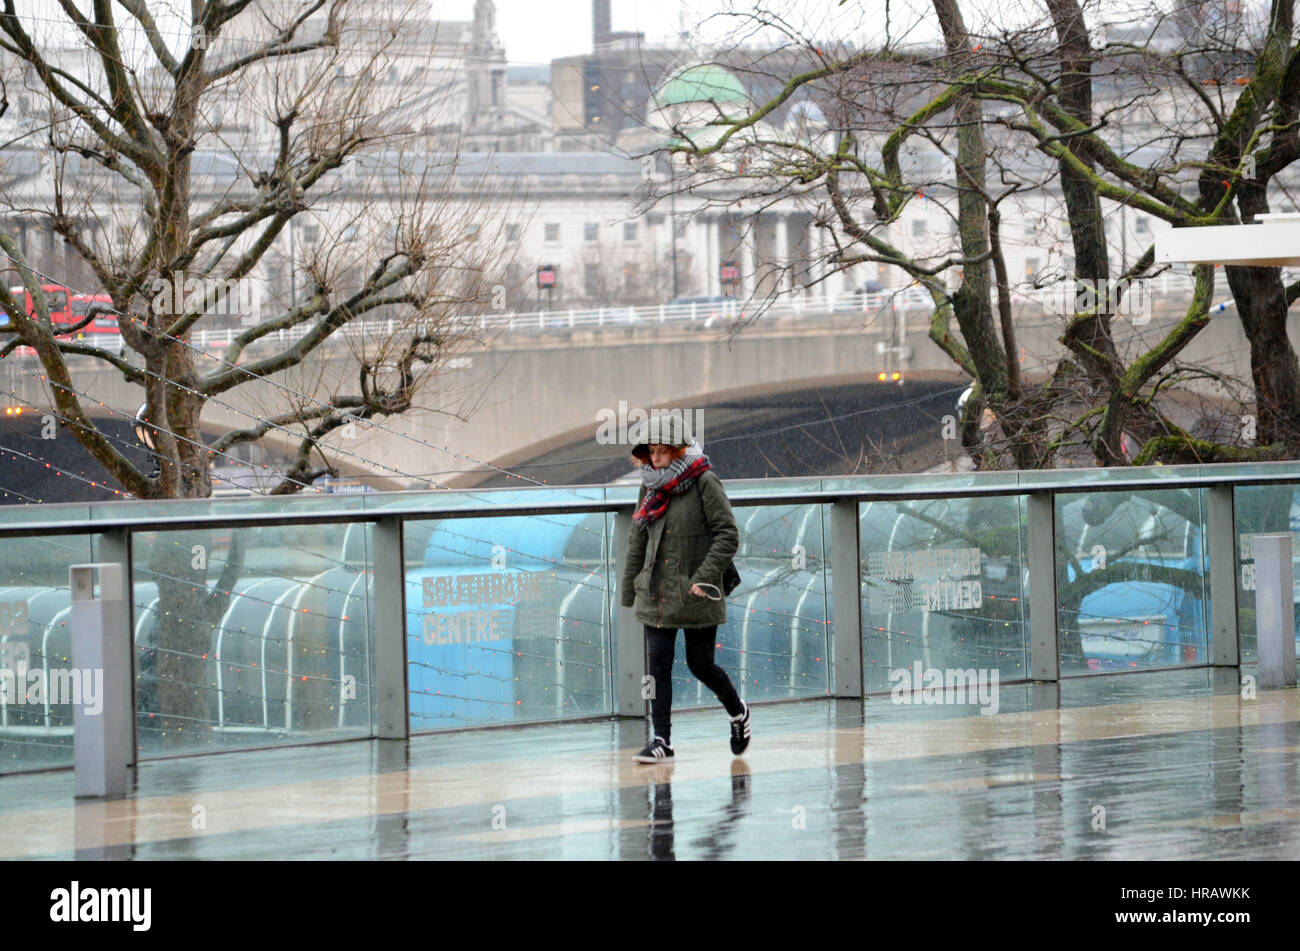 London, UK. 28th Feb, 2017. UK Weather. Rain on the South Bank of the Thames in front of the Royal Festival Hall - Stock Image